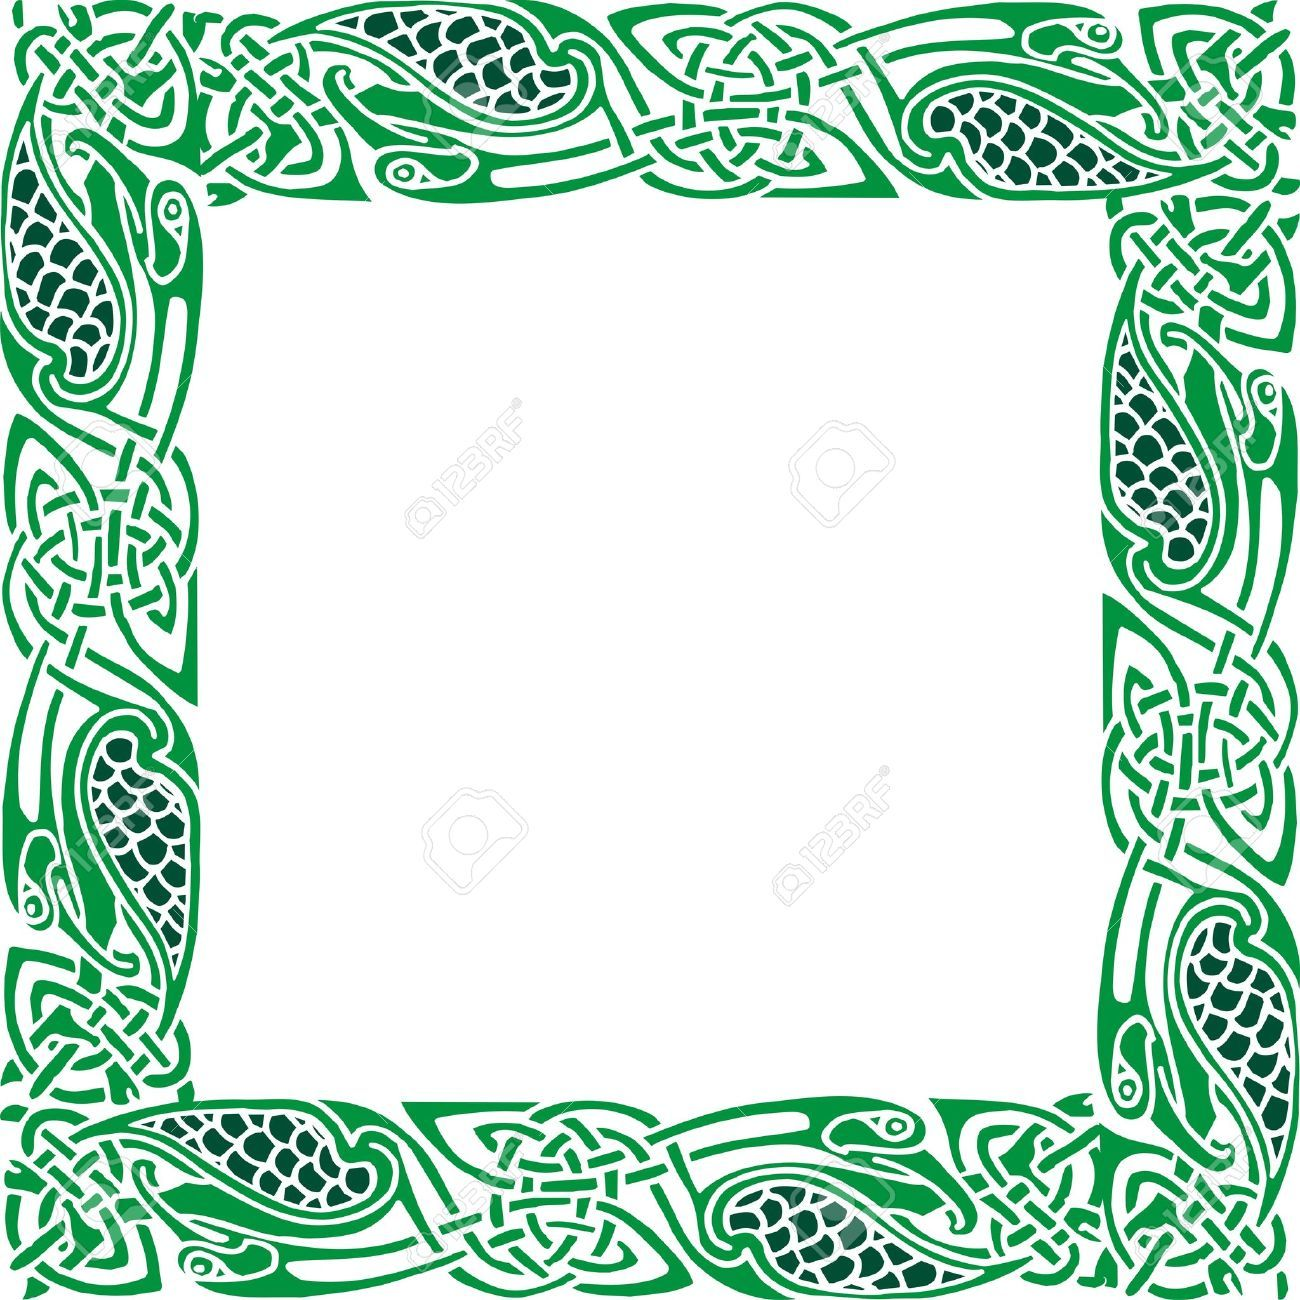 Celtic Knot Border Patterns Designs | 2017 - 2018 Best ...